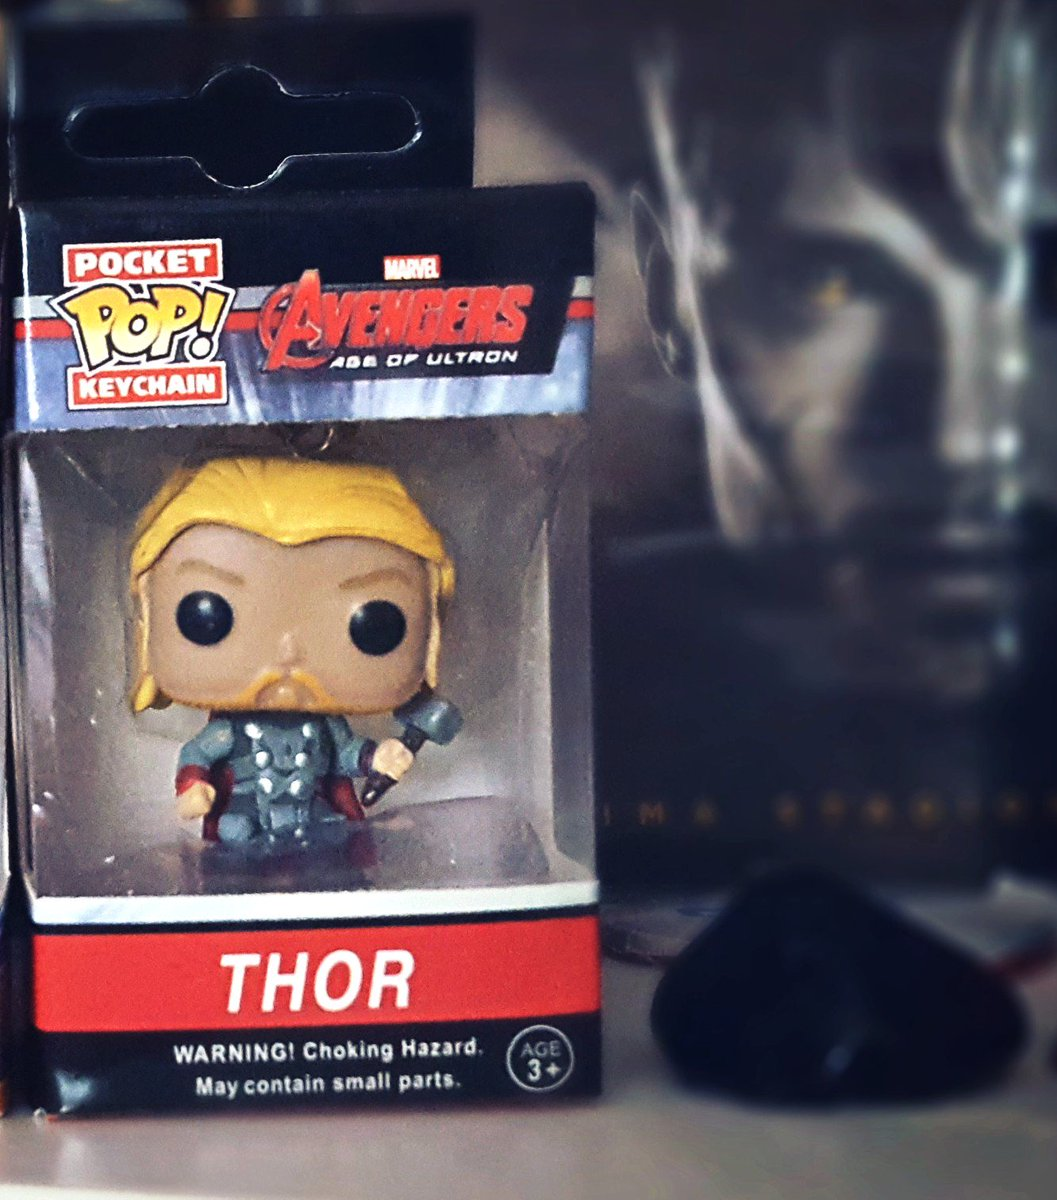 #ThorTheDarkWorld